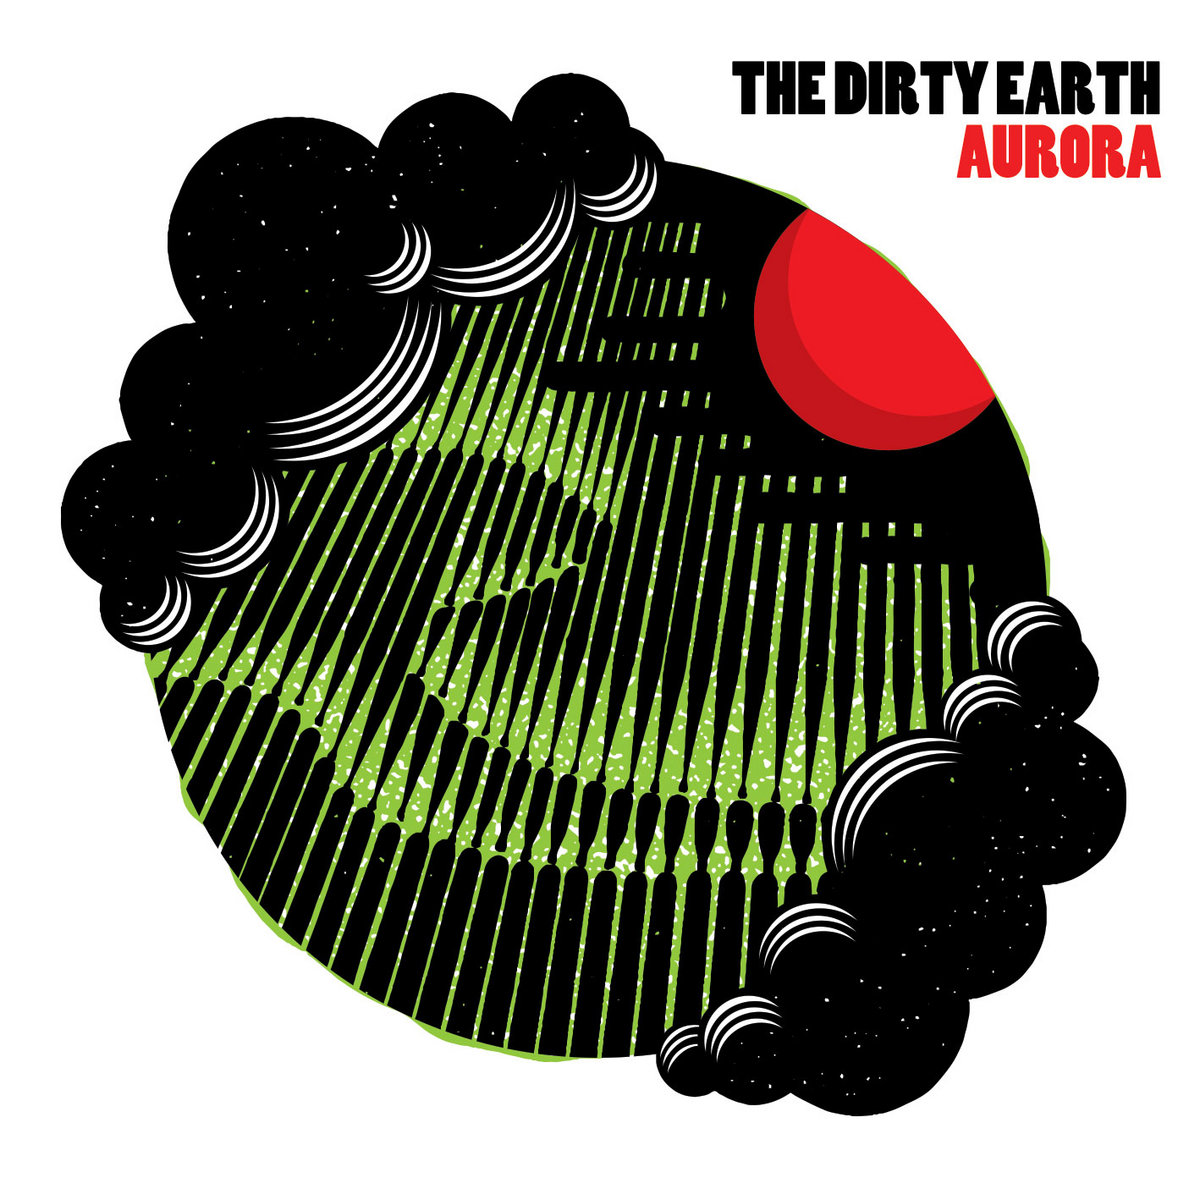 the dirty earth